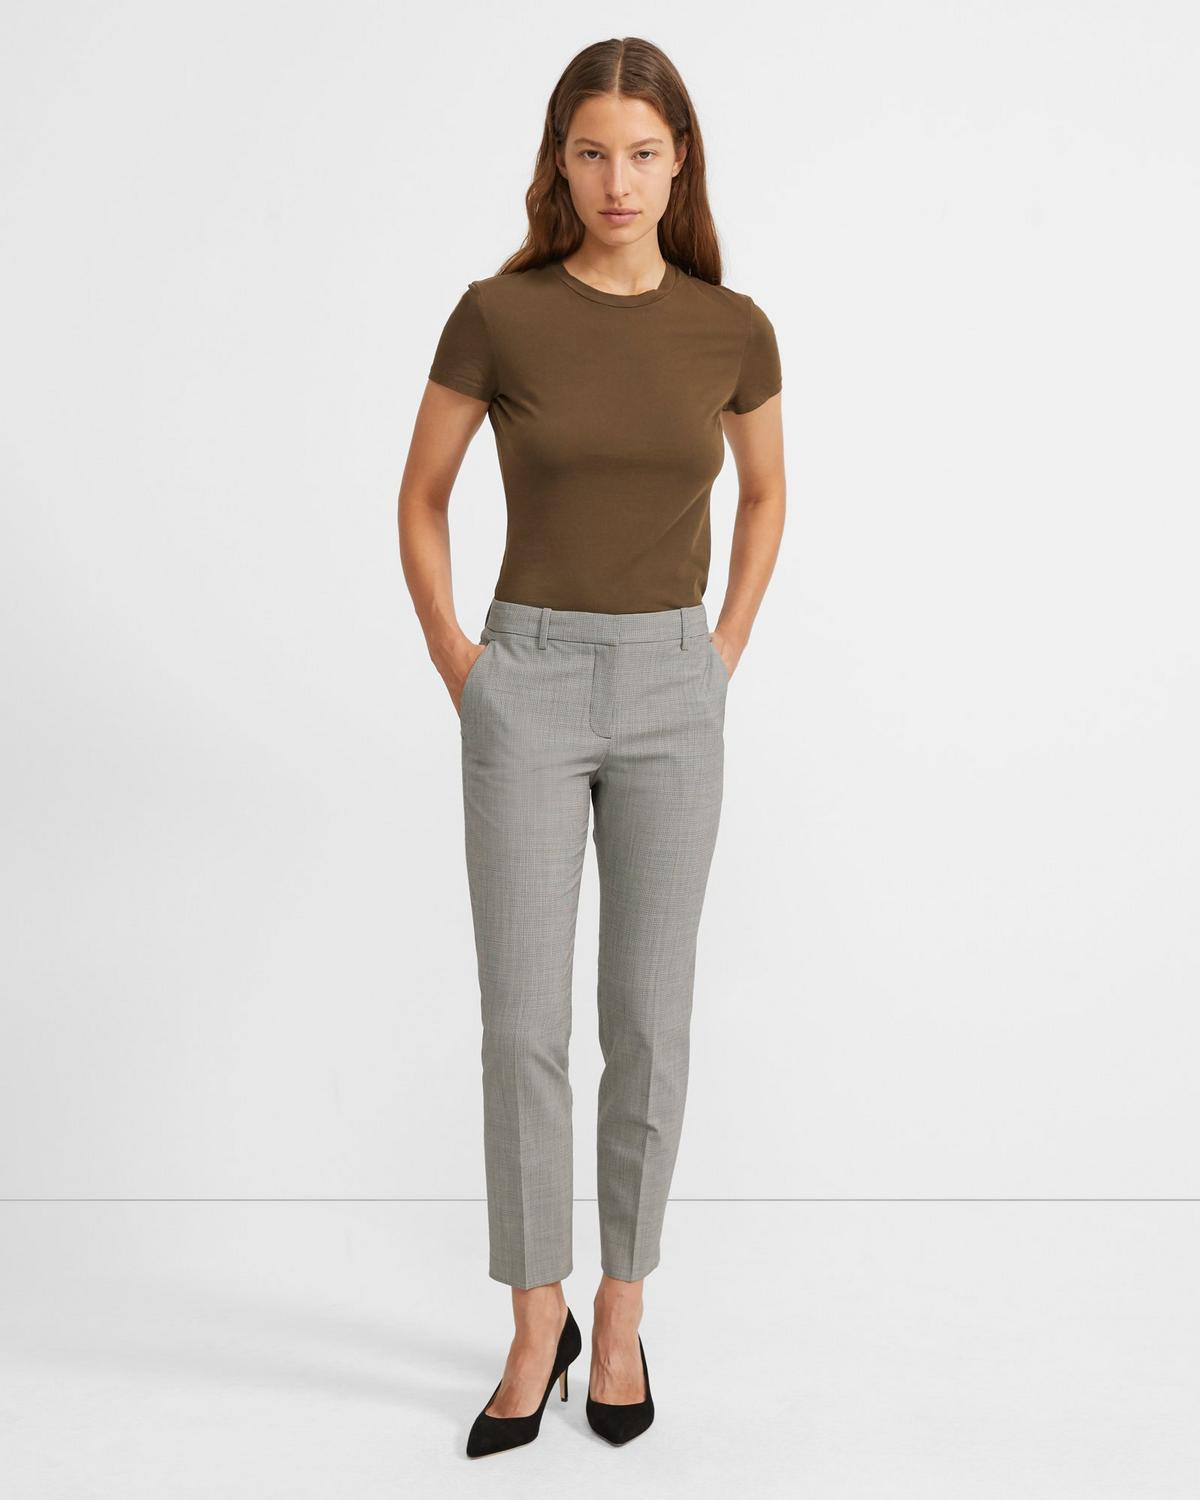 Treeca Pant in Houndstooth Good Wool